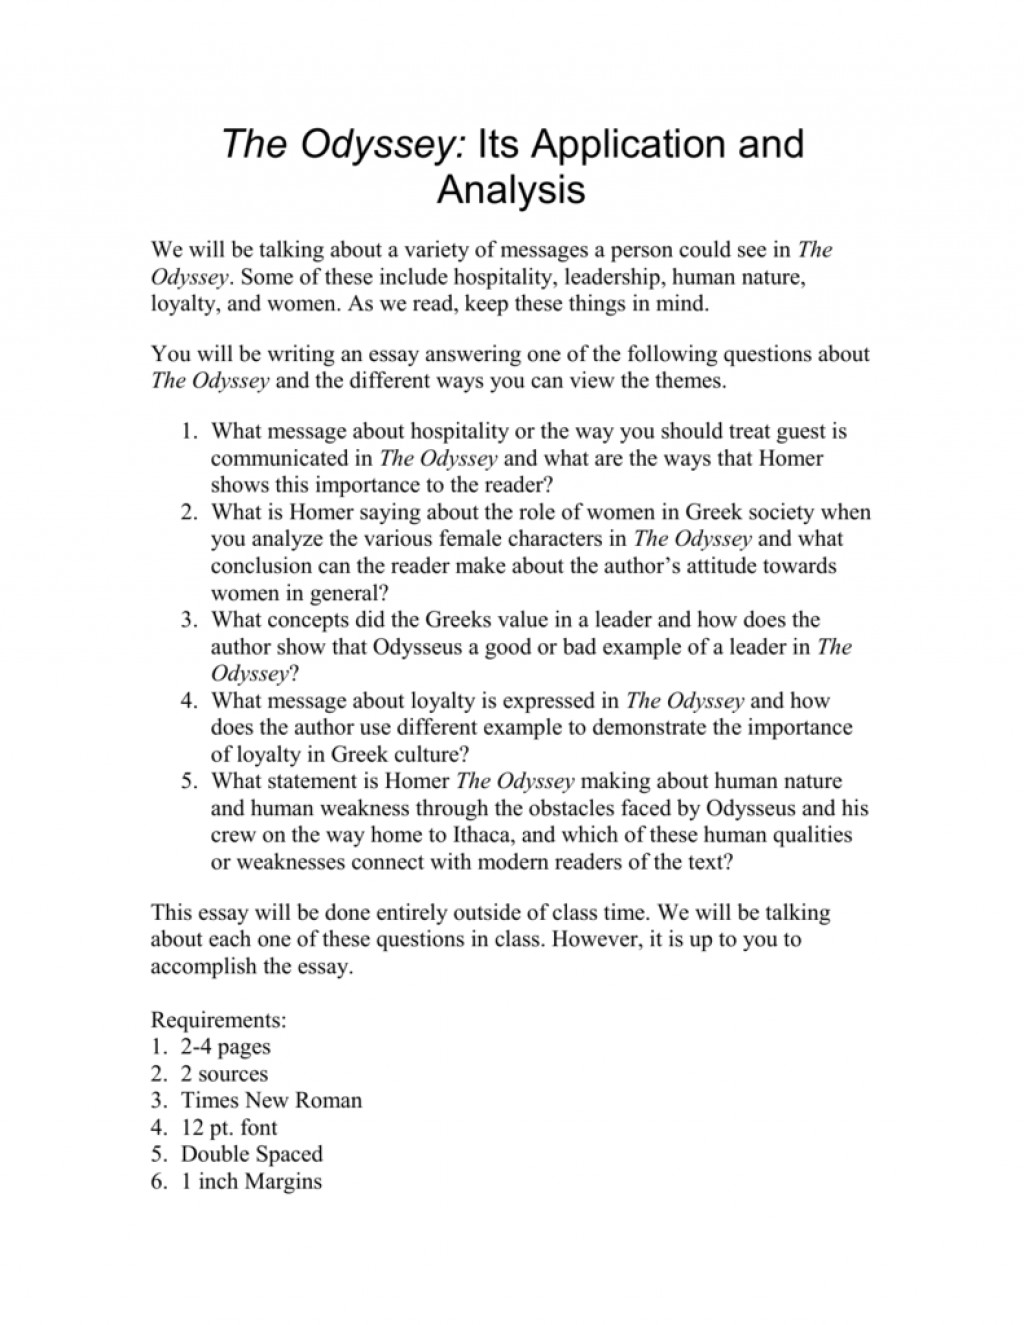 005 008004991 1 The Odyssey Essay Excellent Thesis Hook Large